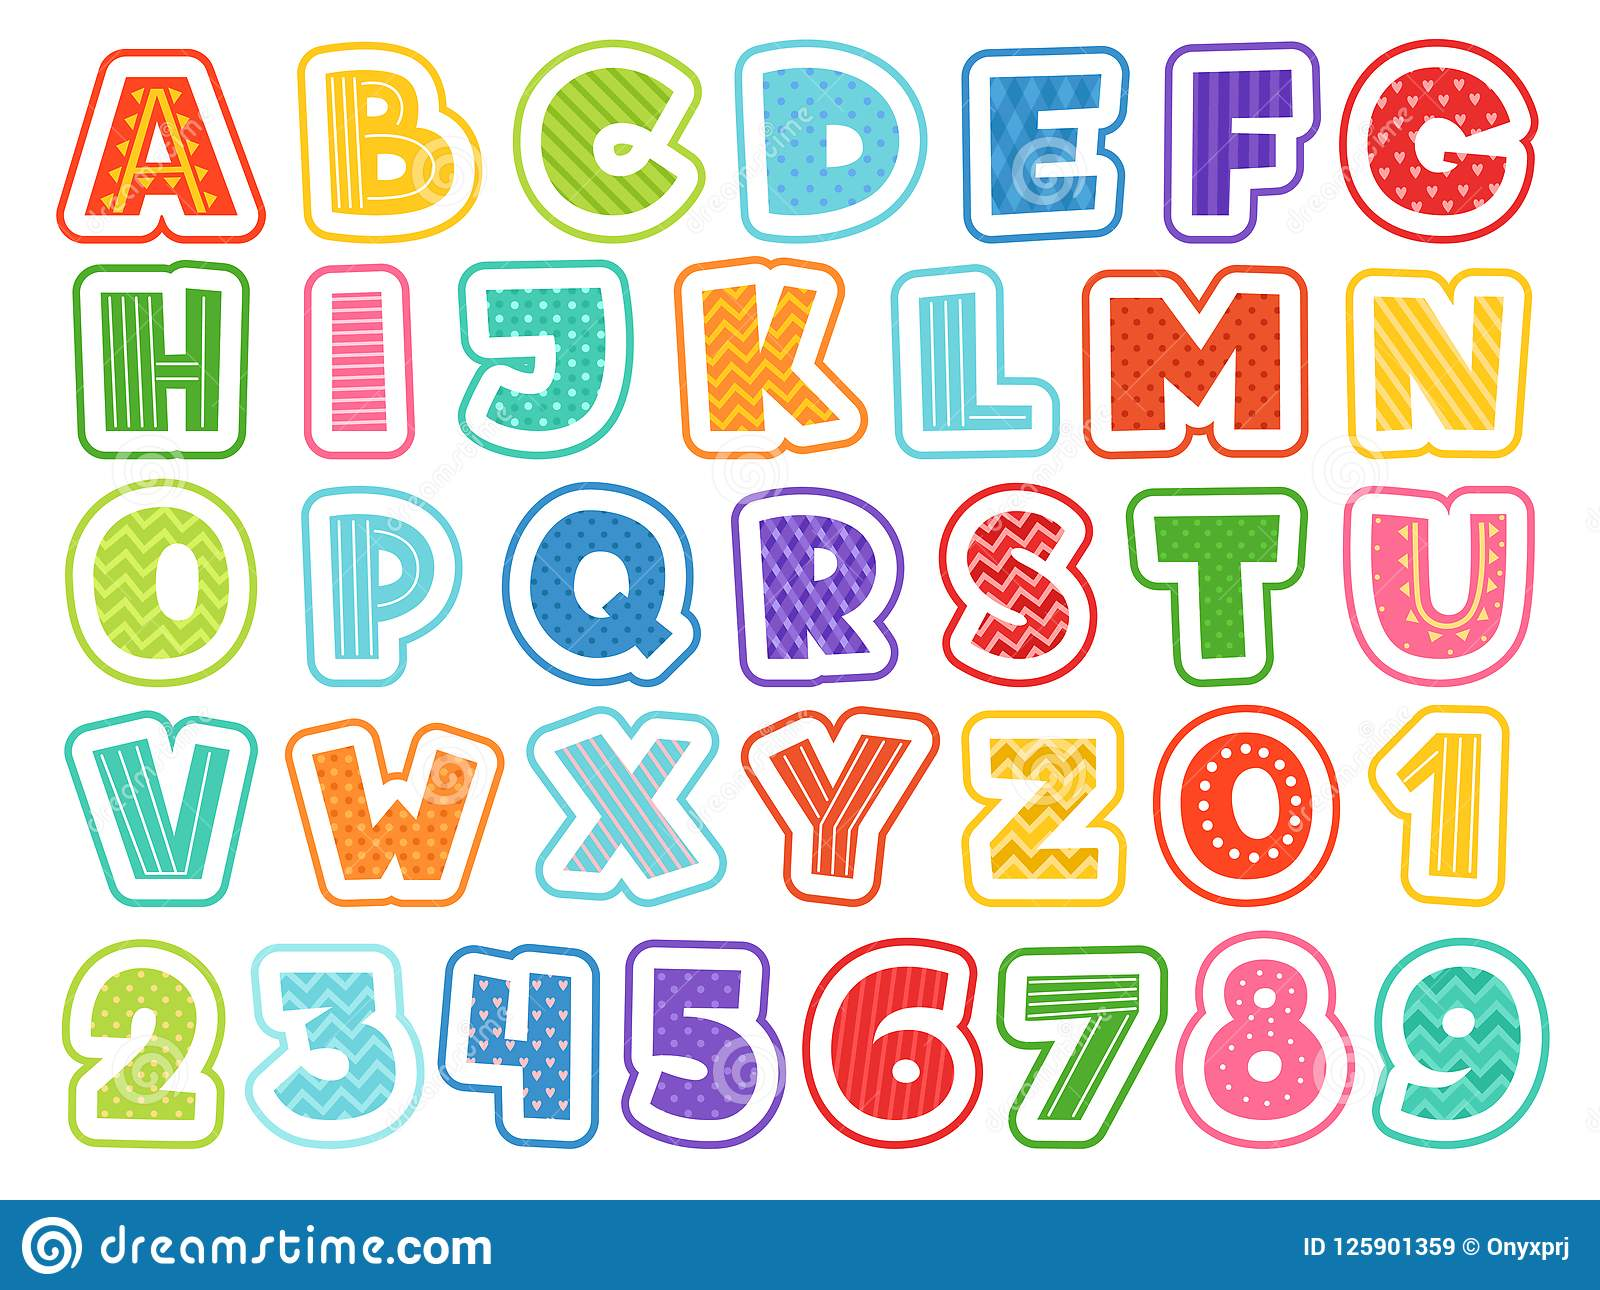 Download Cartoon Alphabet Cute Colored Letters Numbers Signs And Symbols For School Kids And Childrens